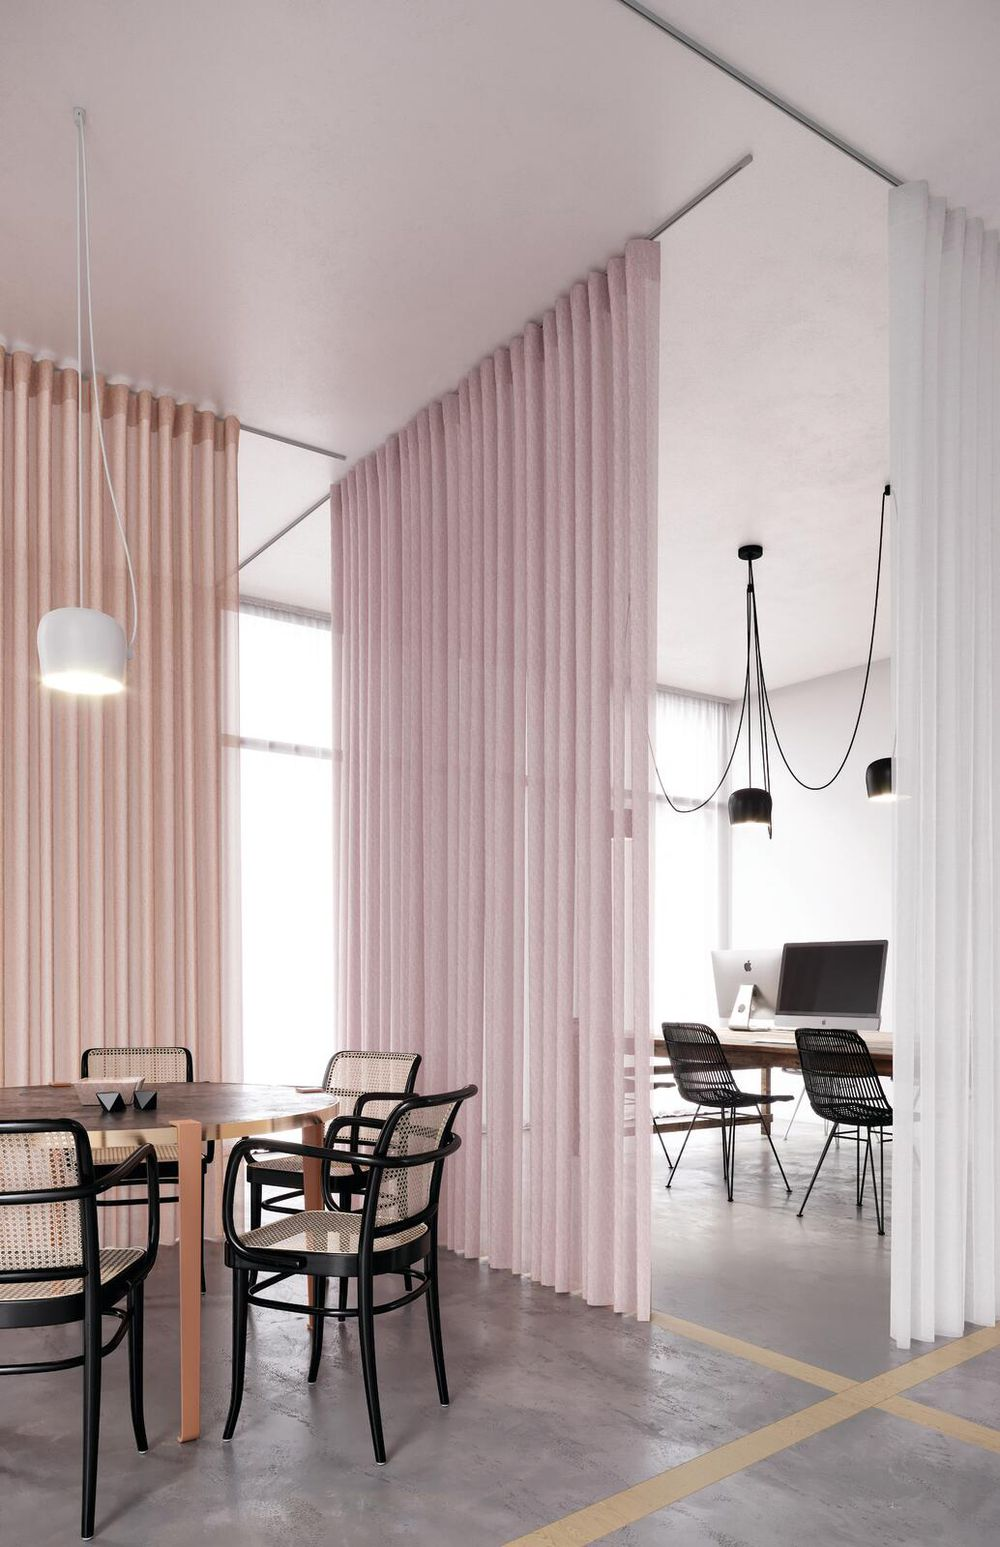 Photo of the fabric Allusion Seagrass in situ by Zepel. Use for Sheer Curtains. Style of Plain, Sheer